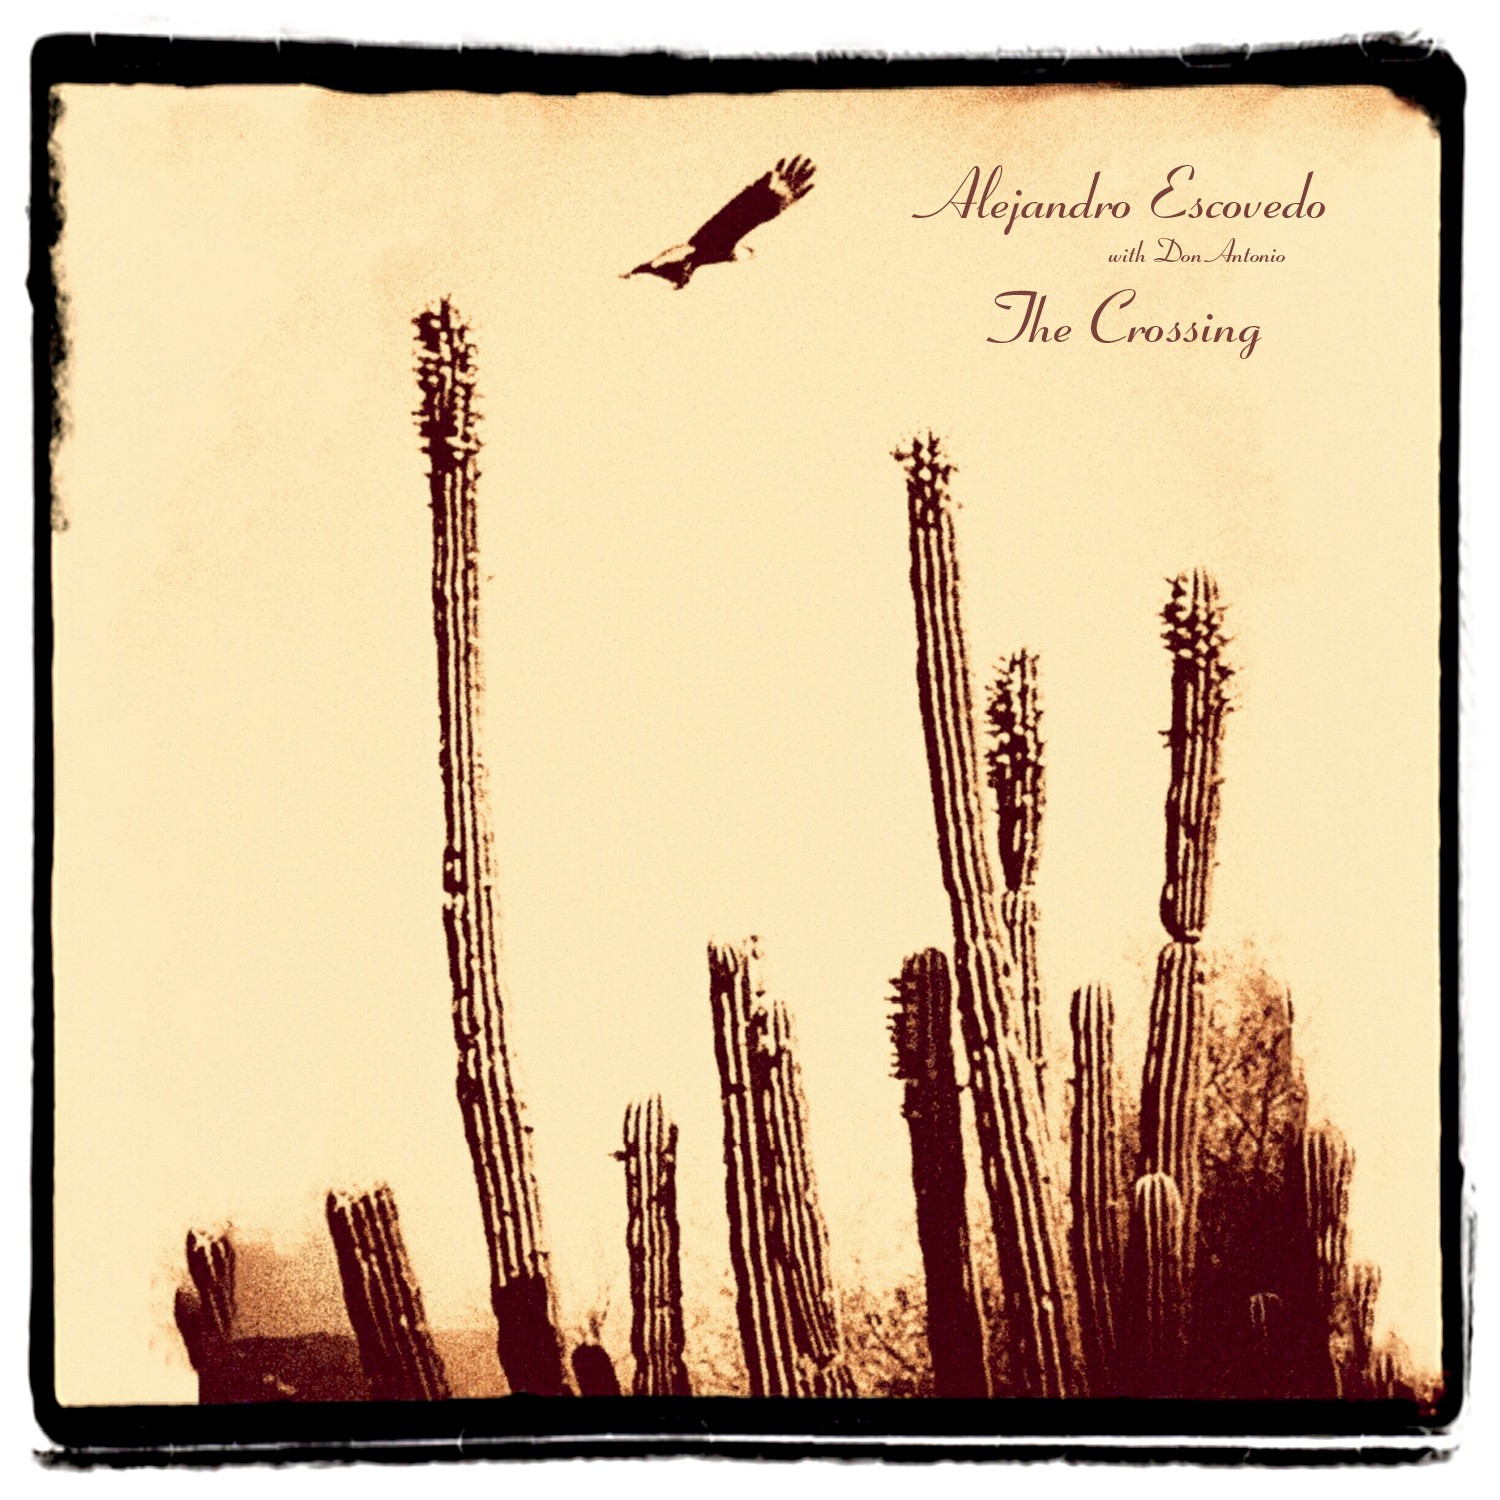 Alejandro Escovedo - The Crossing [PRE-ORDER]